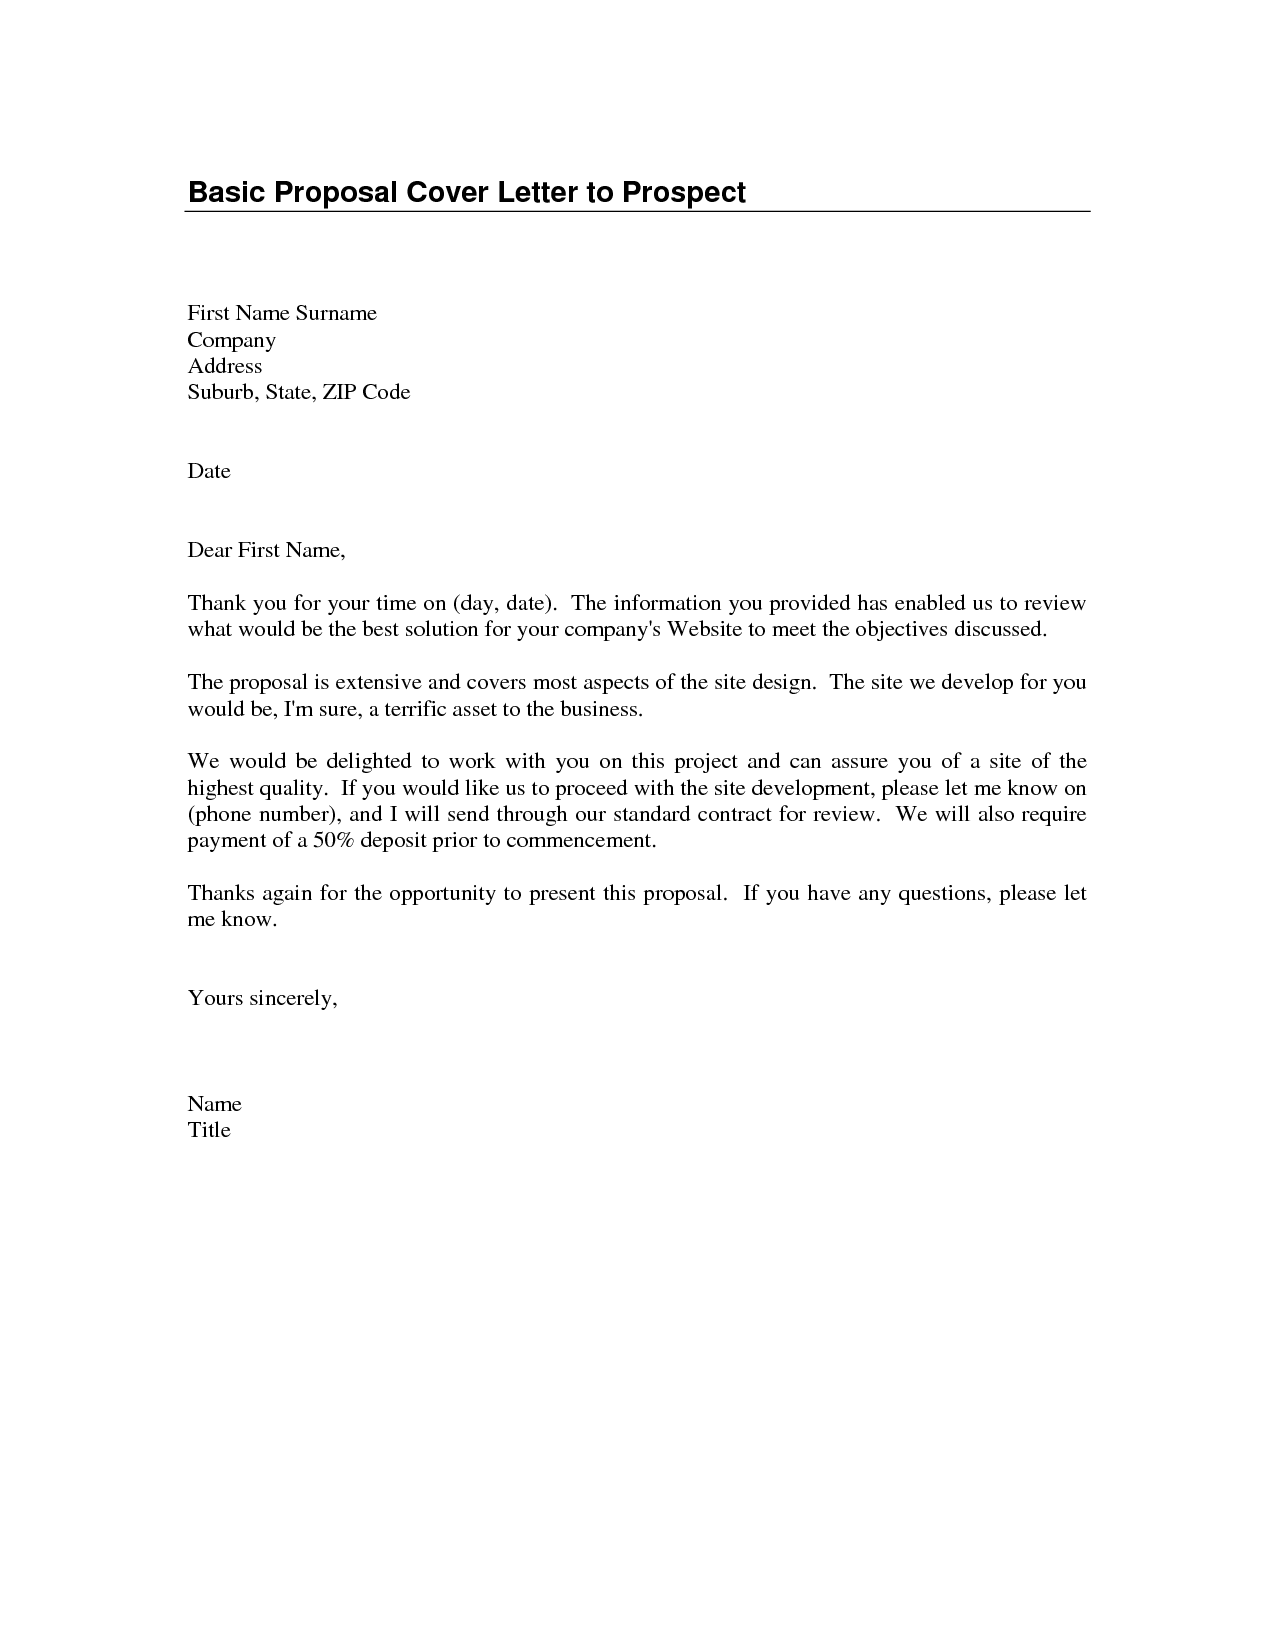 Fresh Basic Cover Letter Sample Download Https